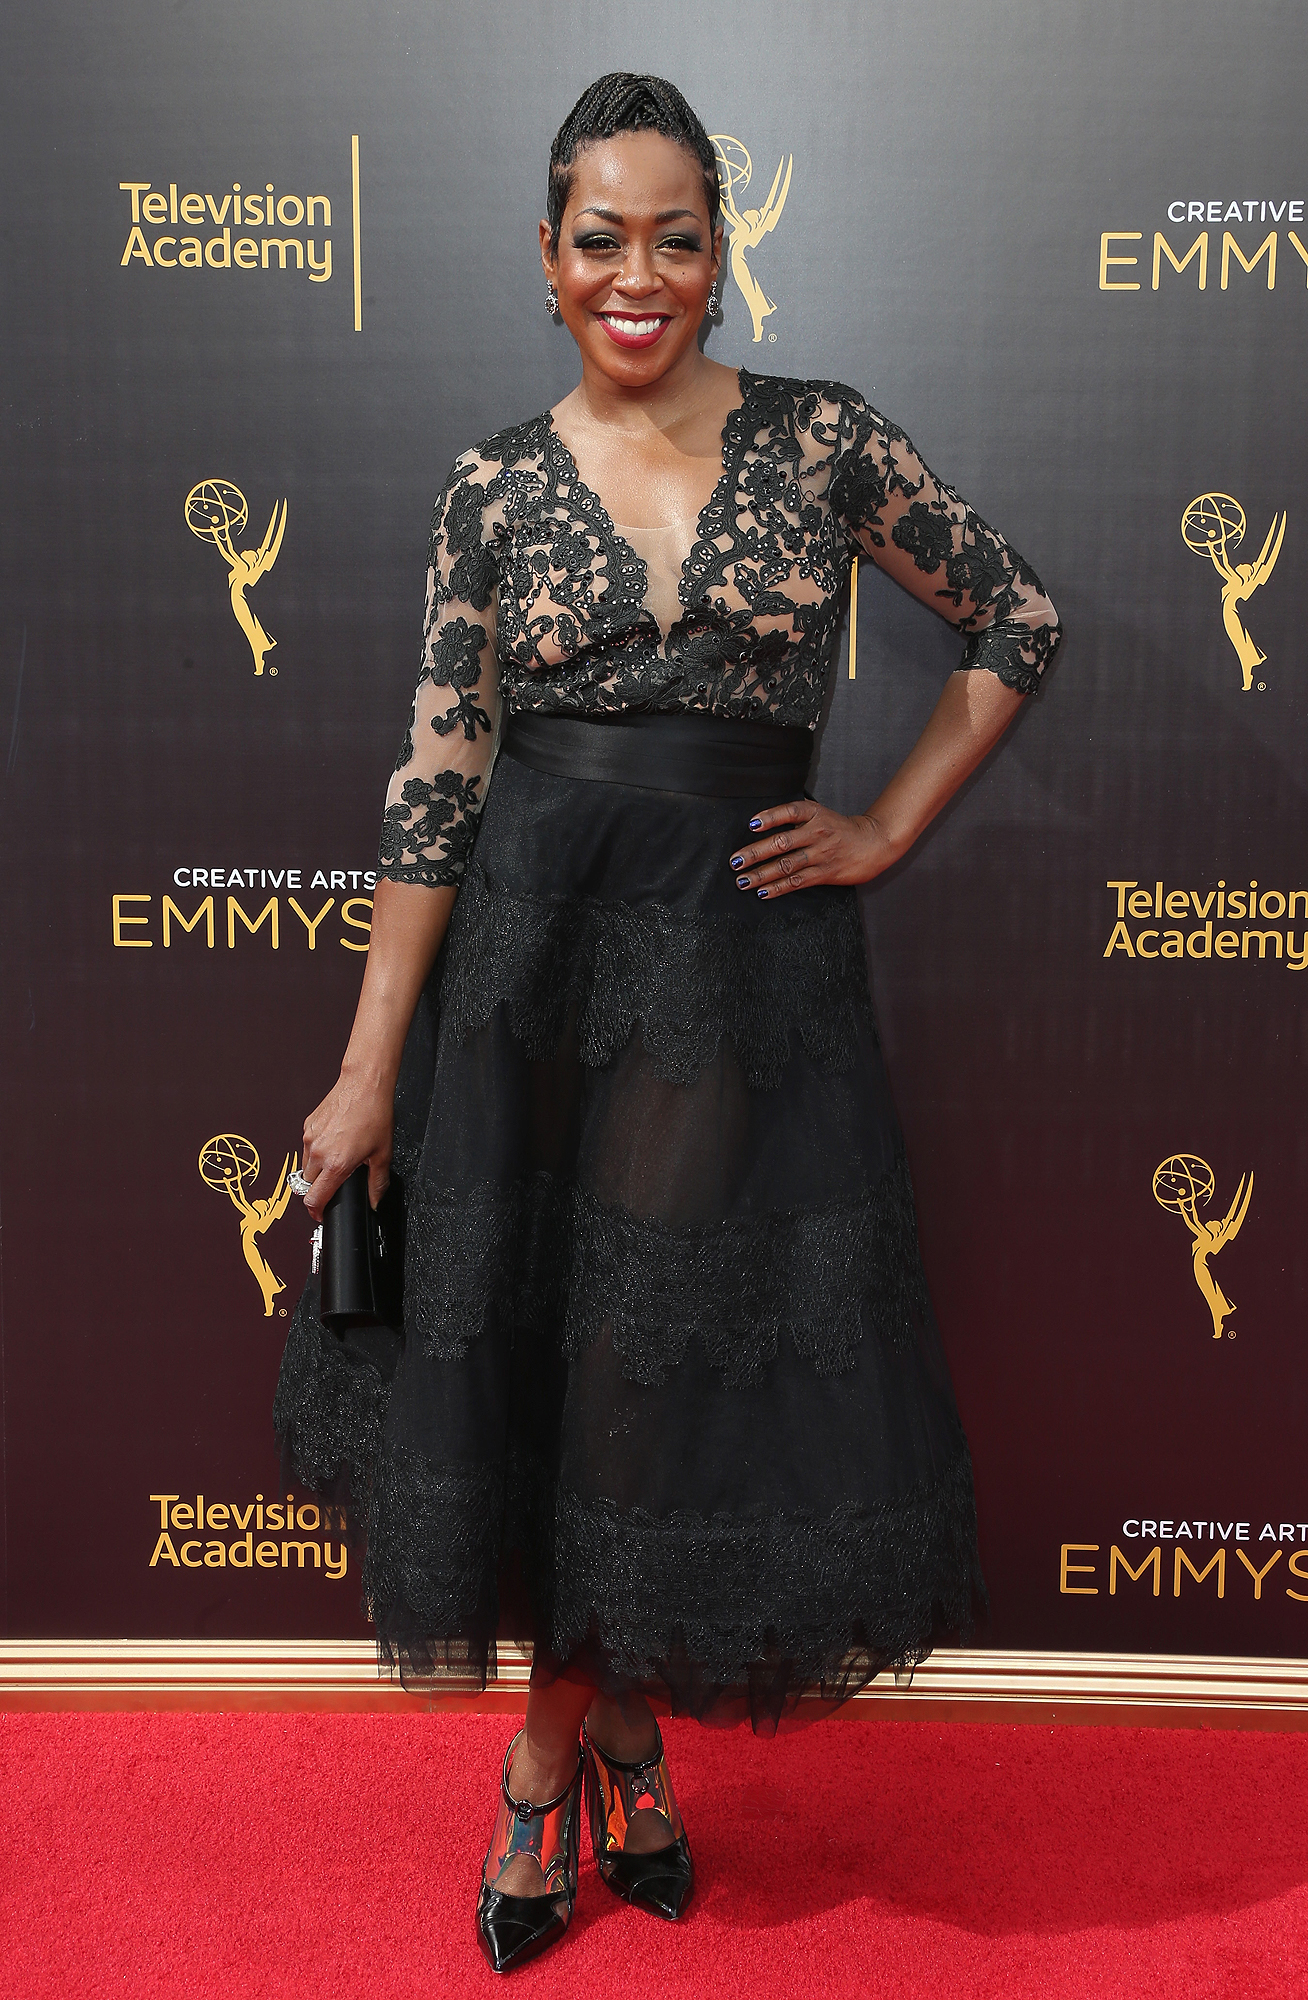 LOS ANGELES, CA - SEPTEMBER 10: Actress Tichina Arnold attends the 2016 Creative Arts Emmy Awards at Microsoft Theater on September 10, 2016 in Los Angeles, California. (Photo by Frederick M. Brown/Getty Images)